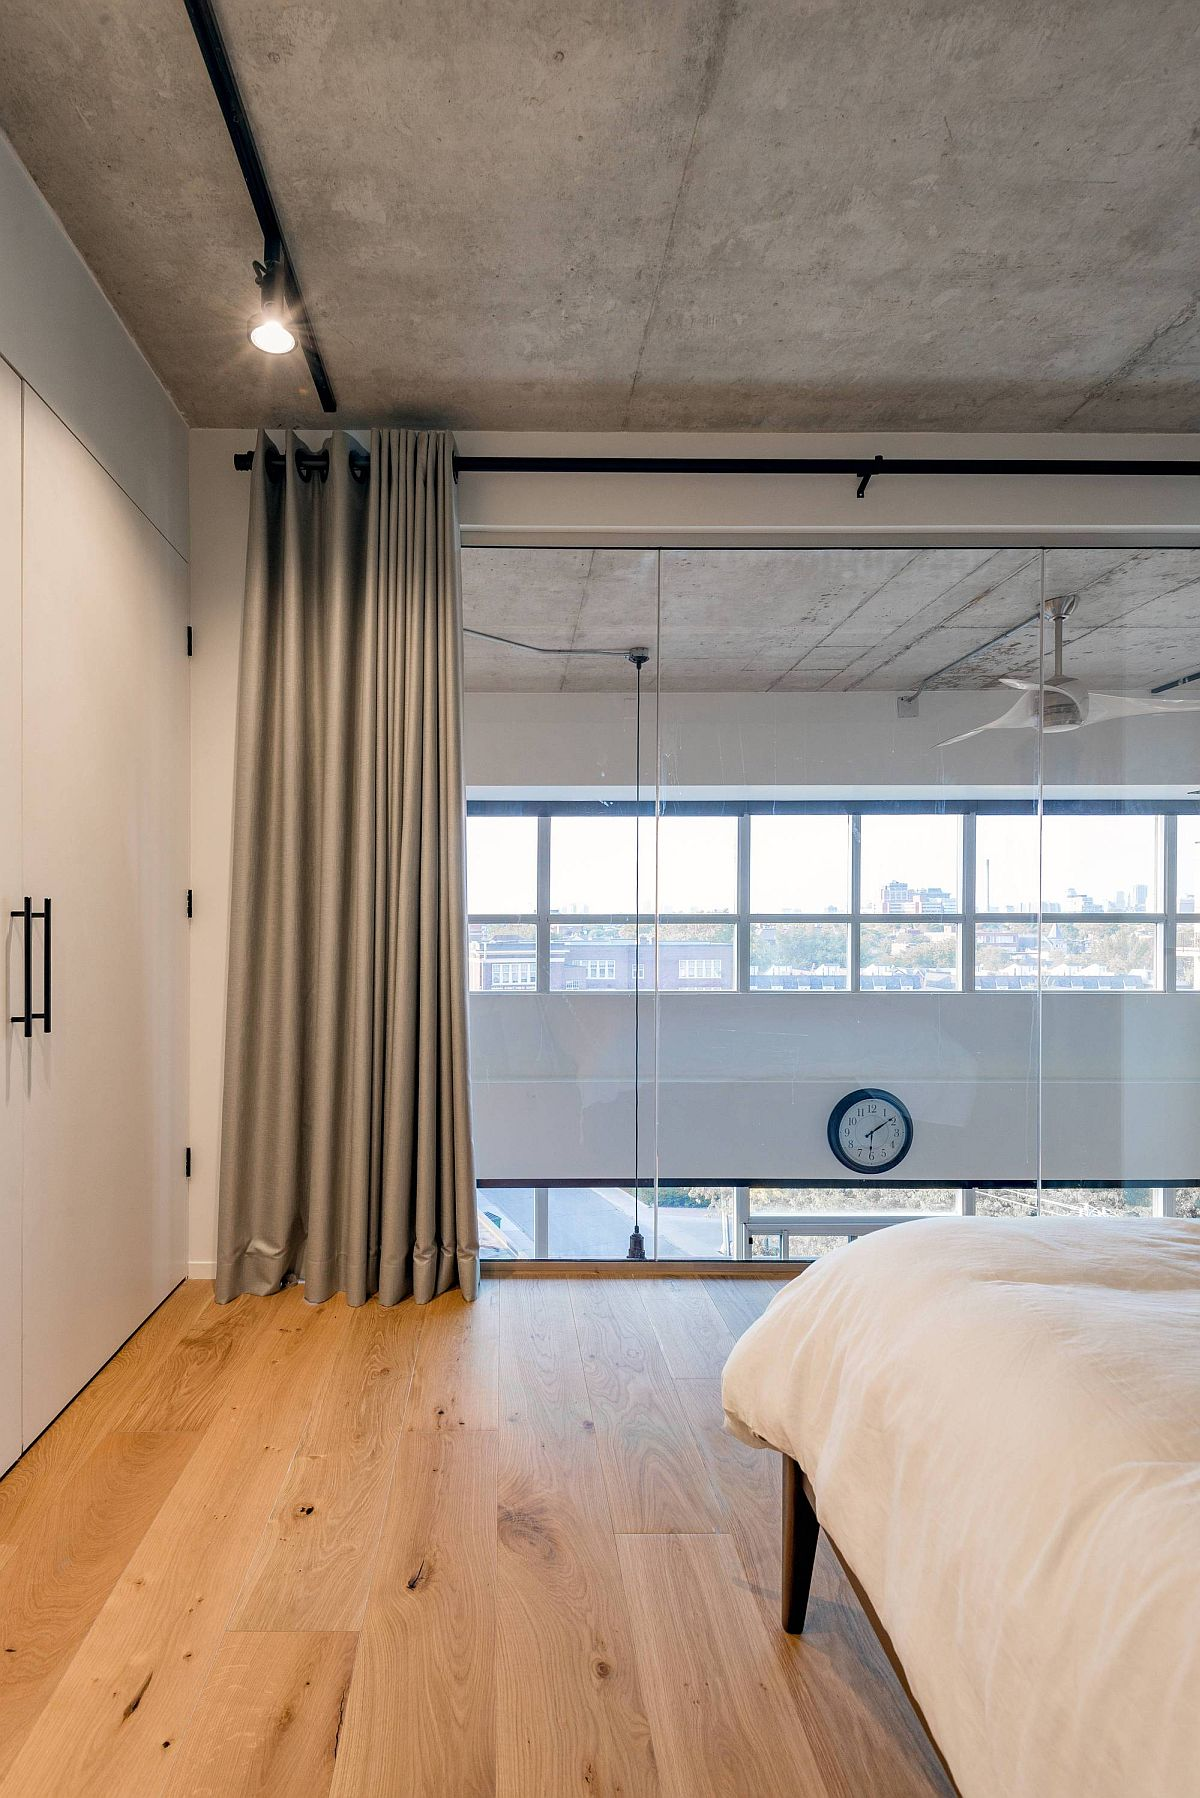 Modern bedroom with wooden floor, concrete ceiling and gray drapes